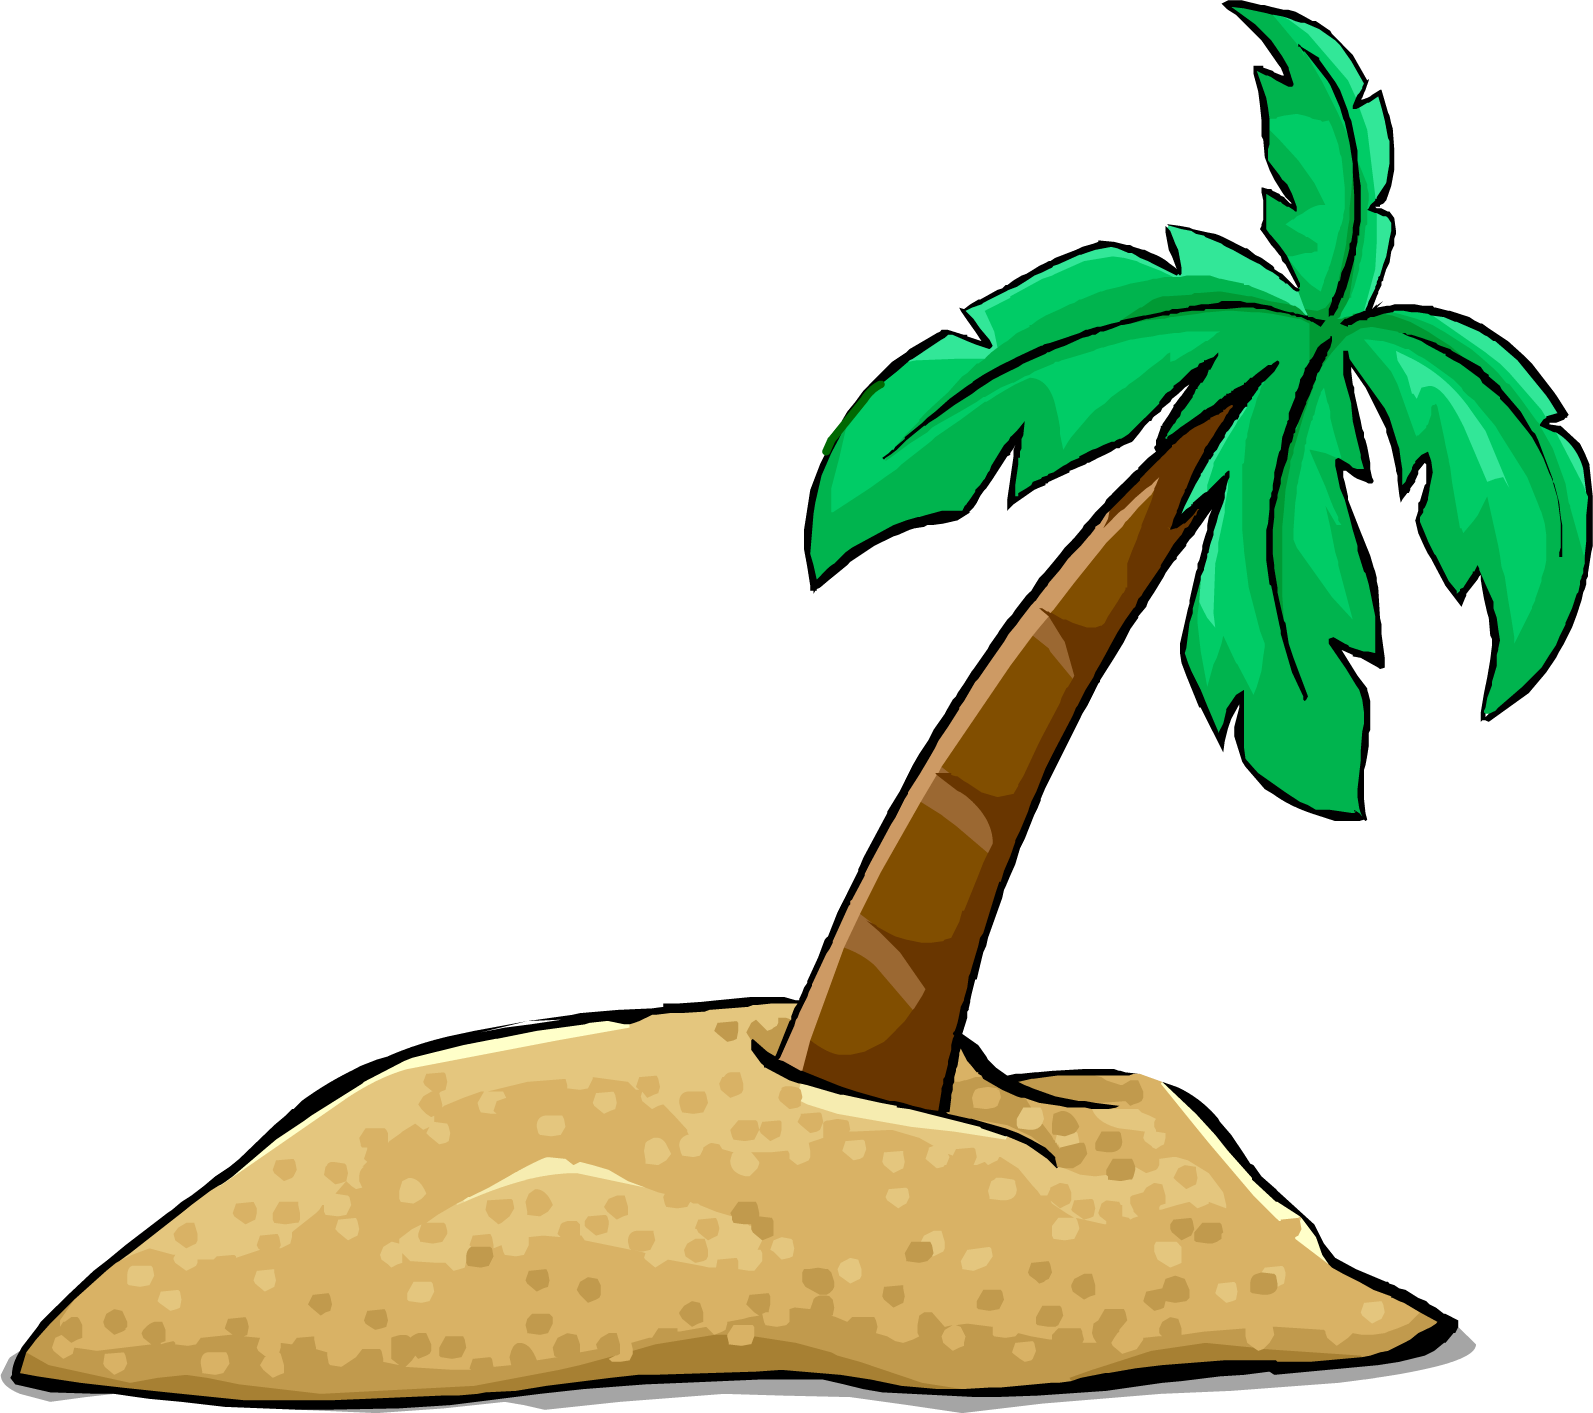 Palm Tree Island: Palm Tree Transparent Background